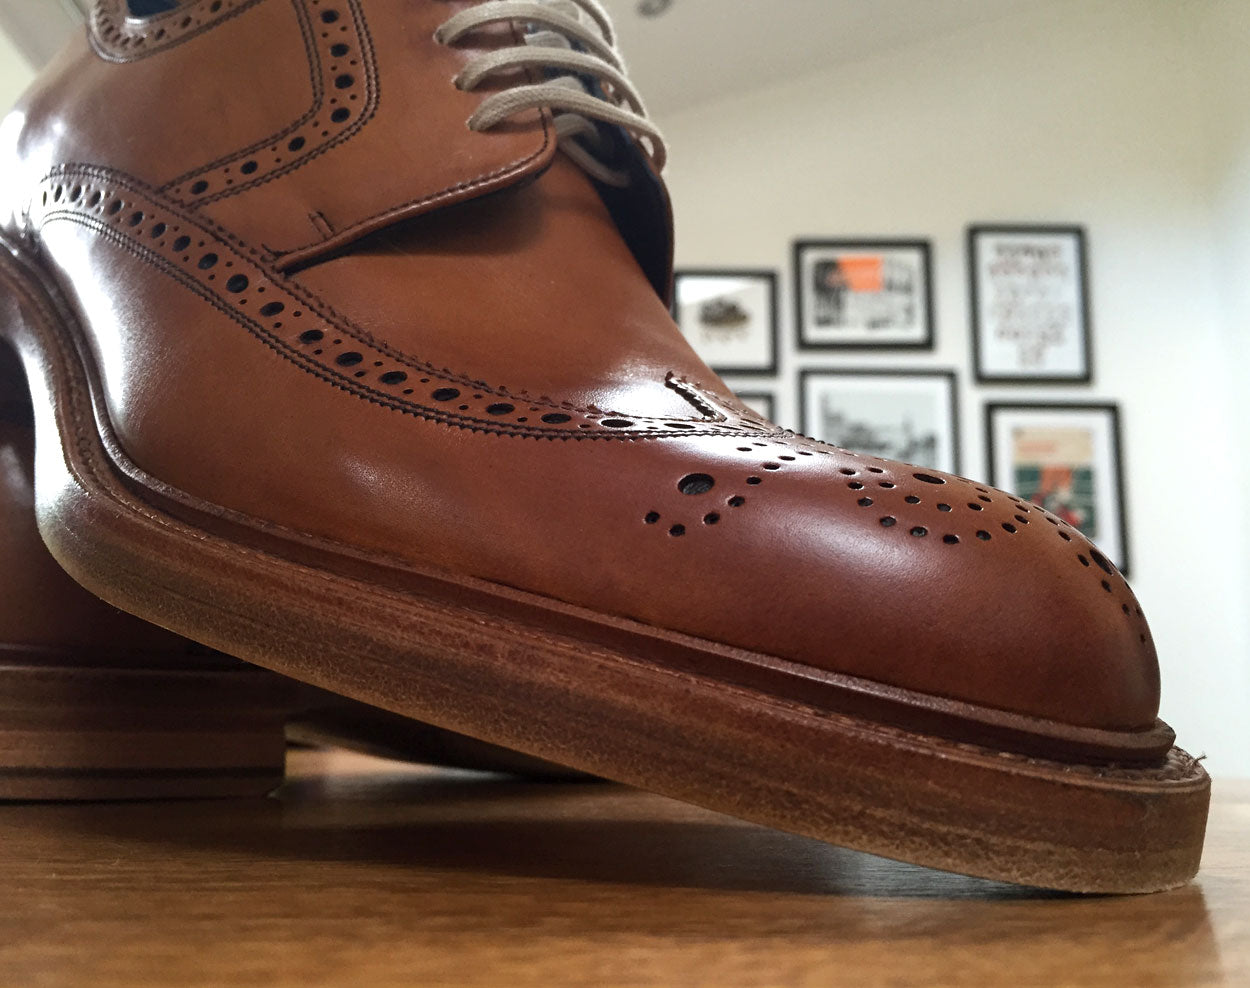 Searching for the perfect Northampton brogue